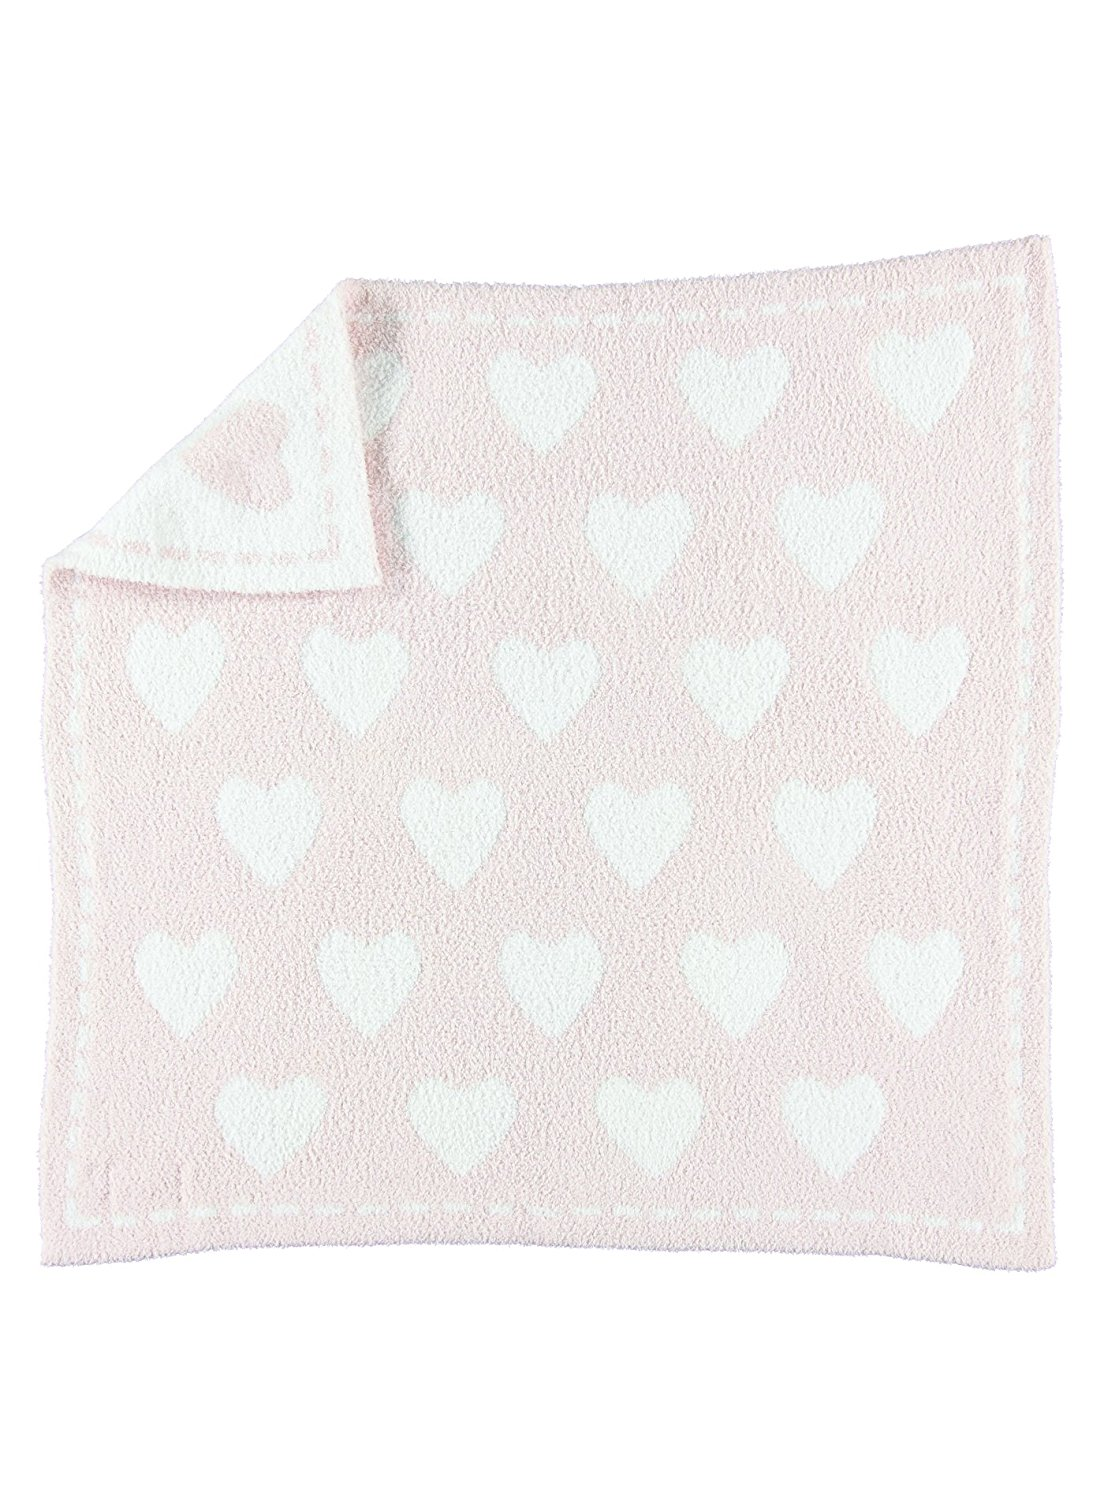 Barefoot Dreams CozyChic Dream Receiving Blanket Pink White Hearts by Barefoot Dreams